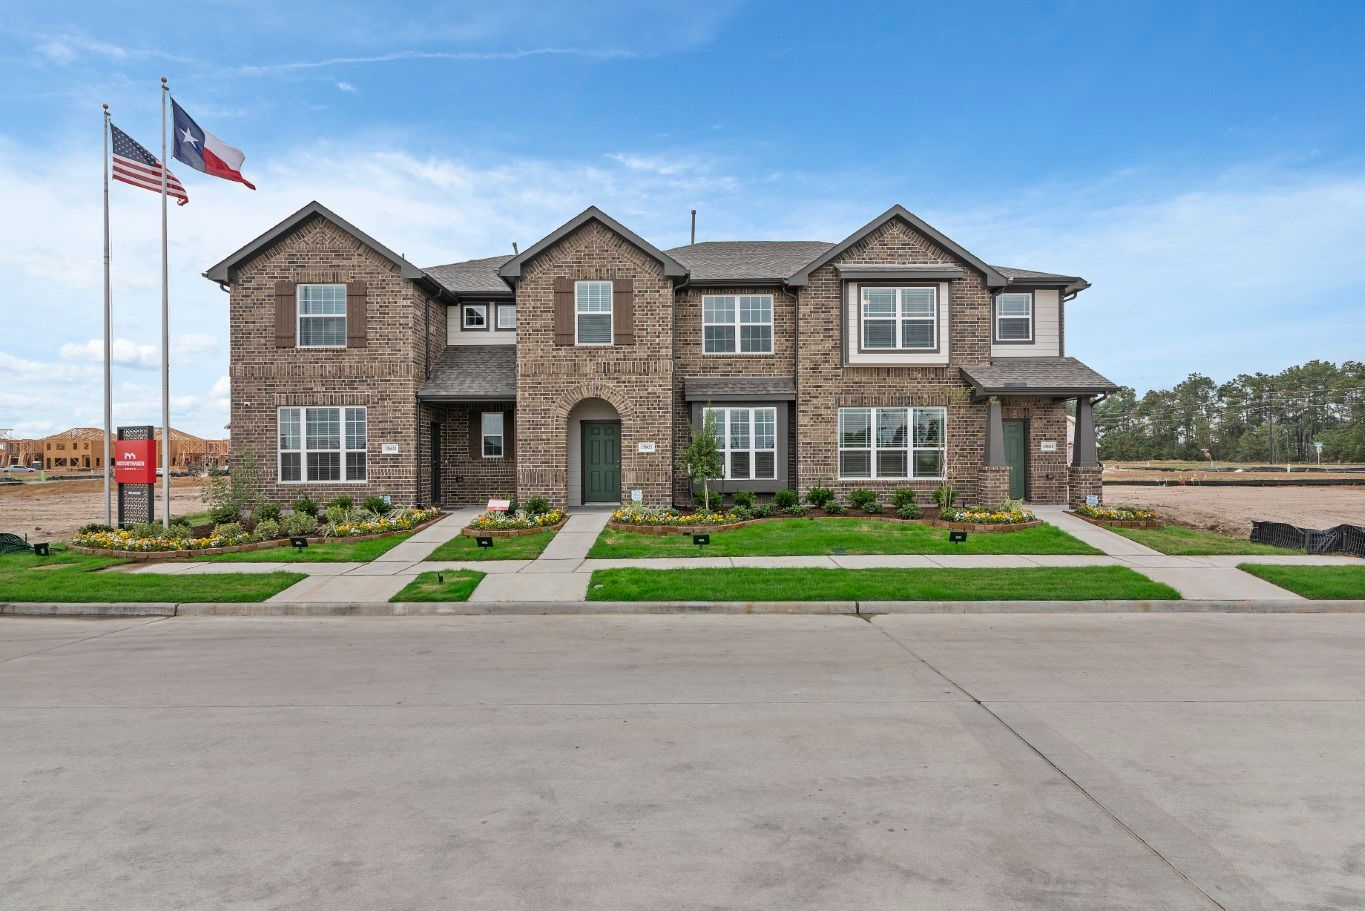 Balmoral Townhomes Model